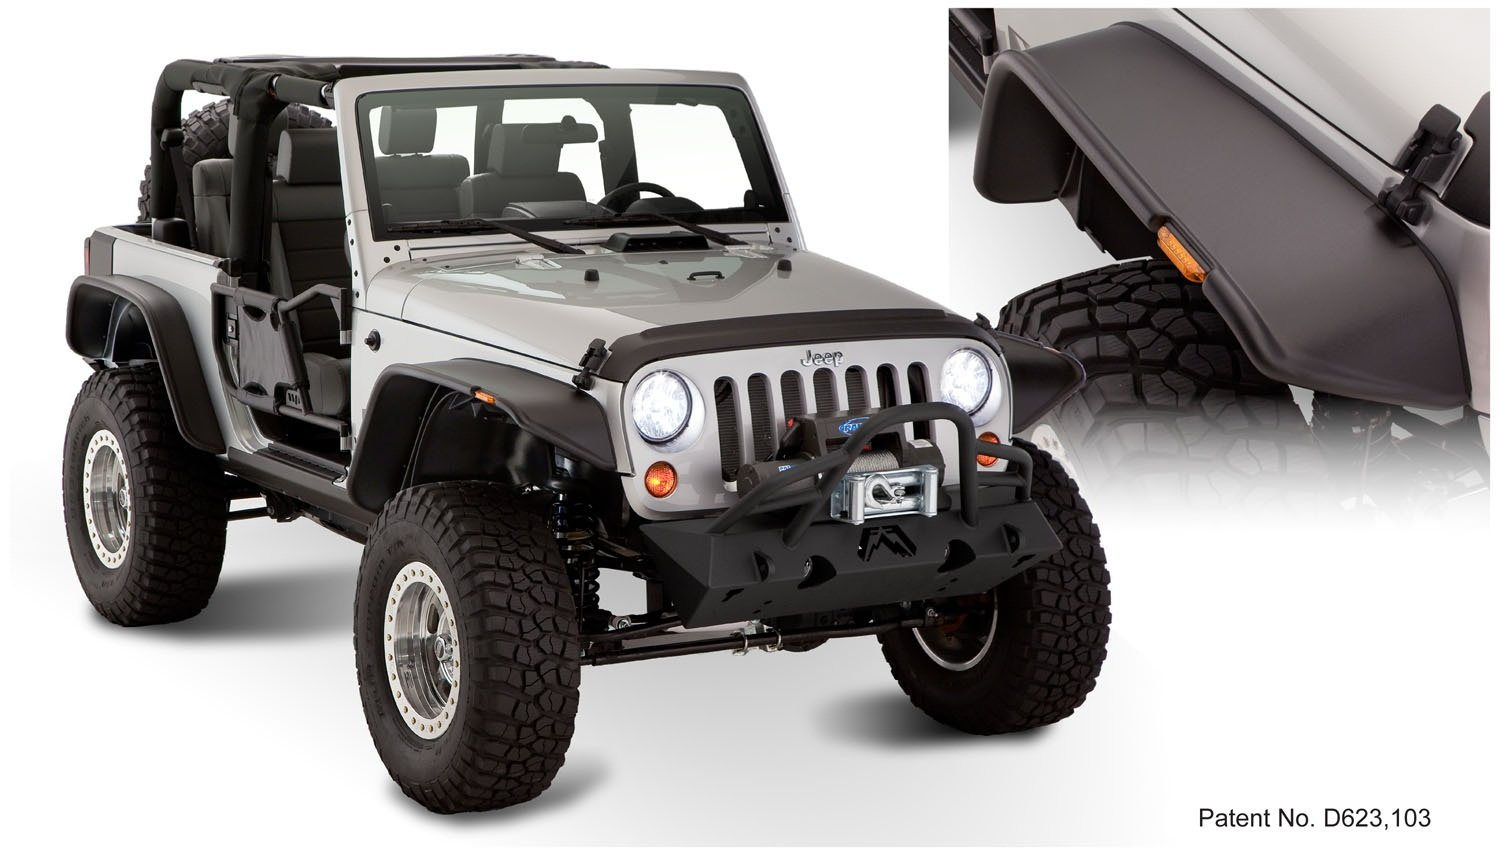 Amazon.com Bushwacker 10919-07 Jeep Flat Style Fender Flare - Set of 4 Automotive  sc 1 st  Amazon.com & Amazon.com: Bushwacker 10919-07 Jeep Flat Style Fender Flare - Set ...